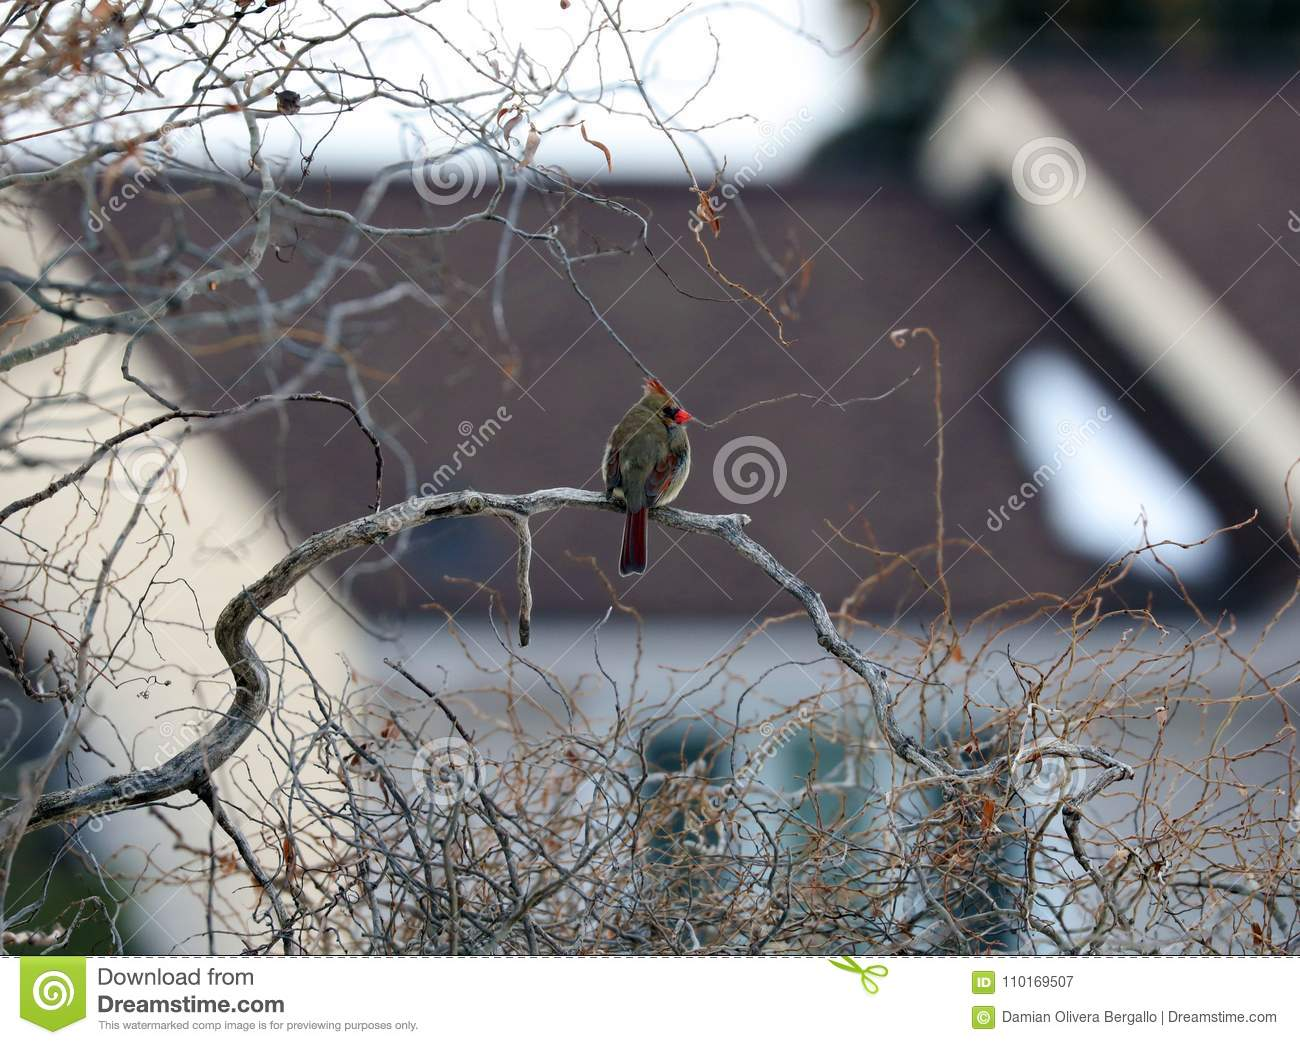 Northern Cardinal in a Branch during winter in Michigan